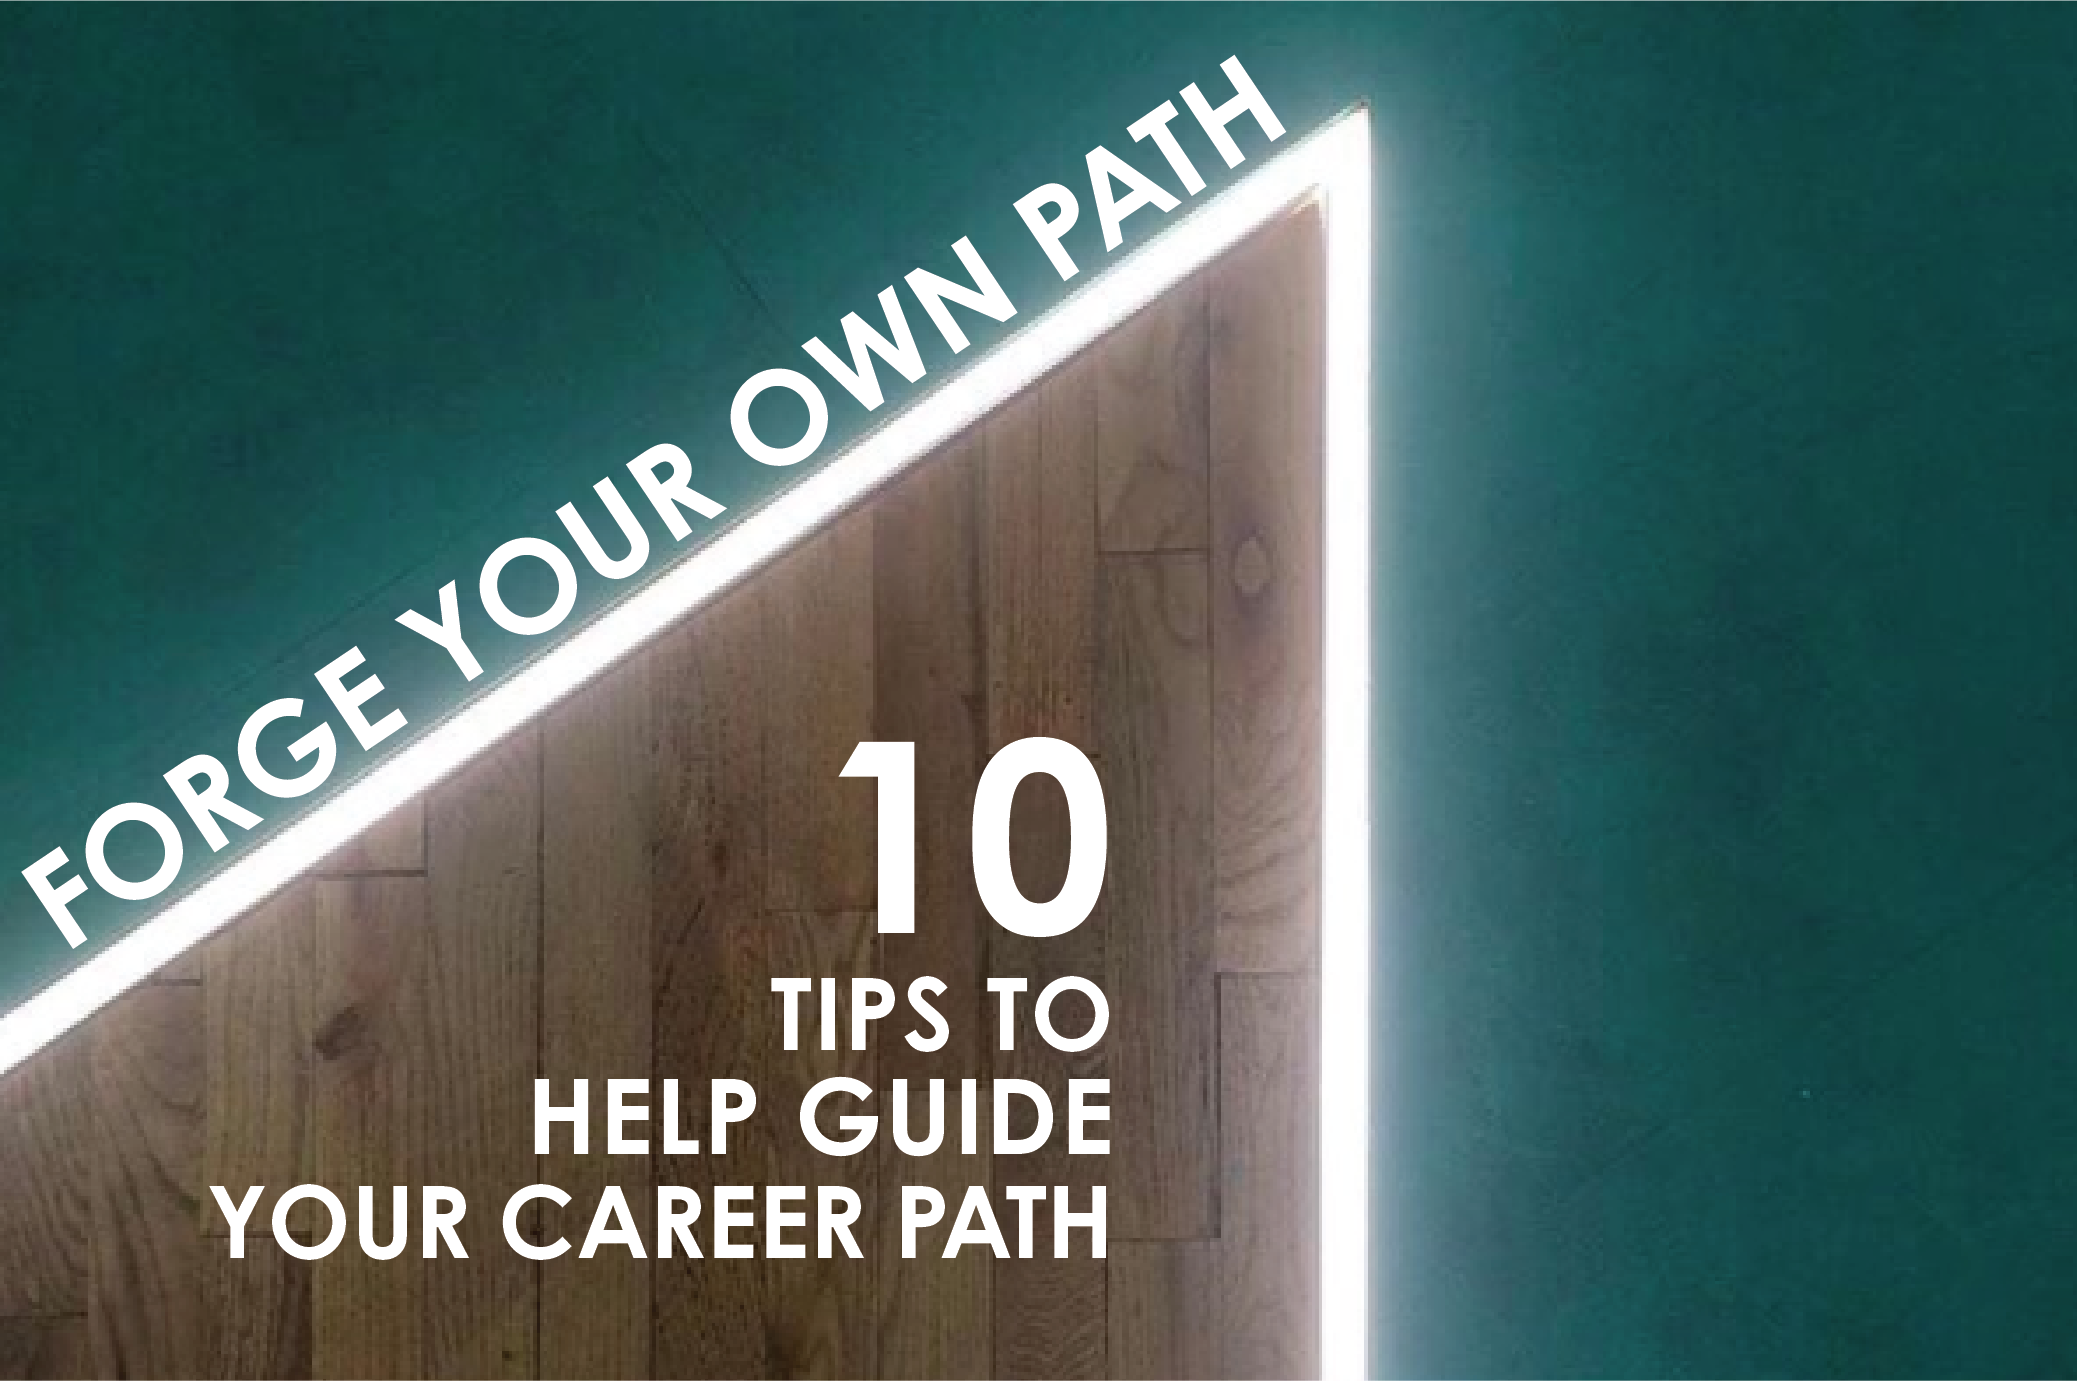 Graphic showing the idea of forging your own path